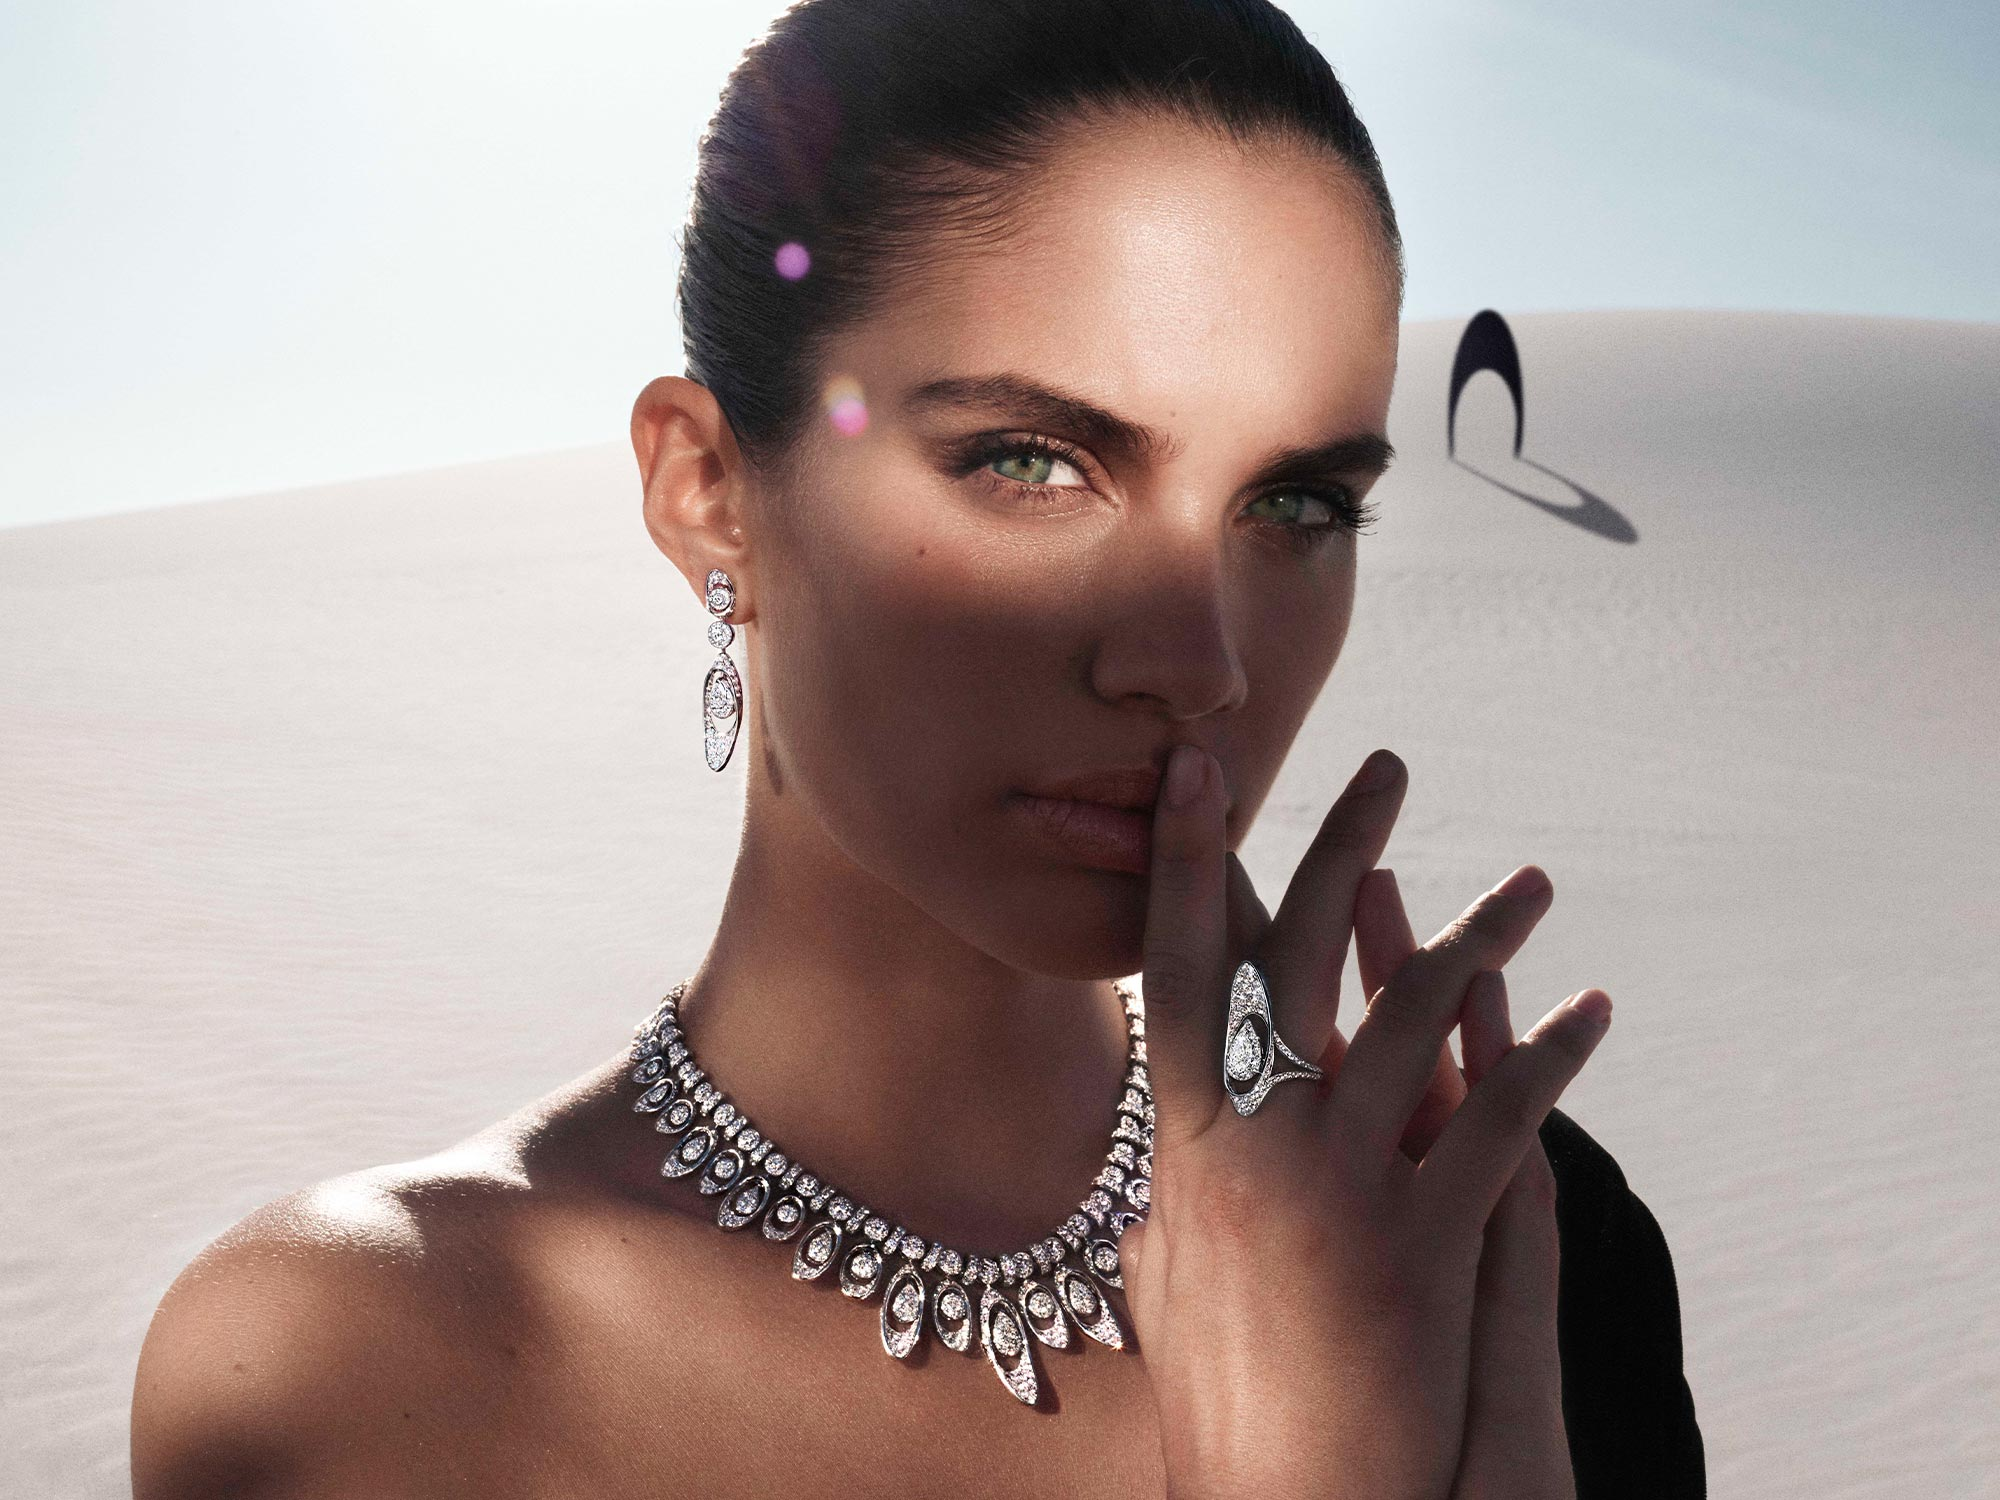 Close up of a model wearing Graff Gateway diamond earrings, necklace and ring from the Tribal jewellery collection, in a desert